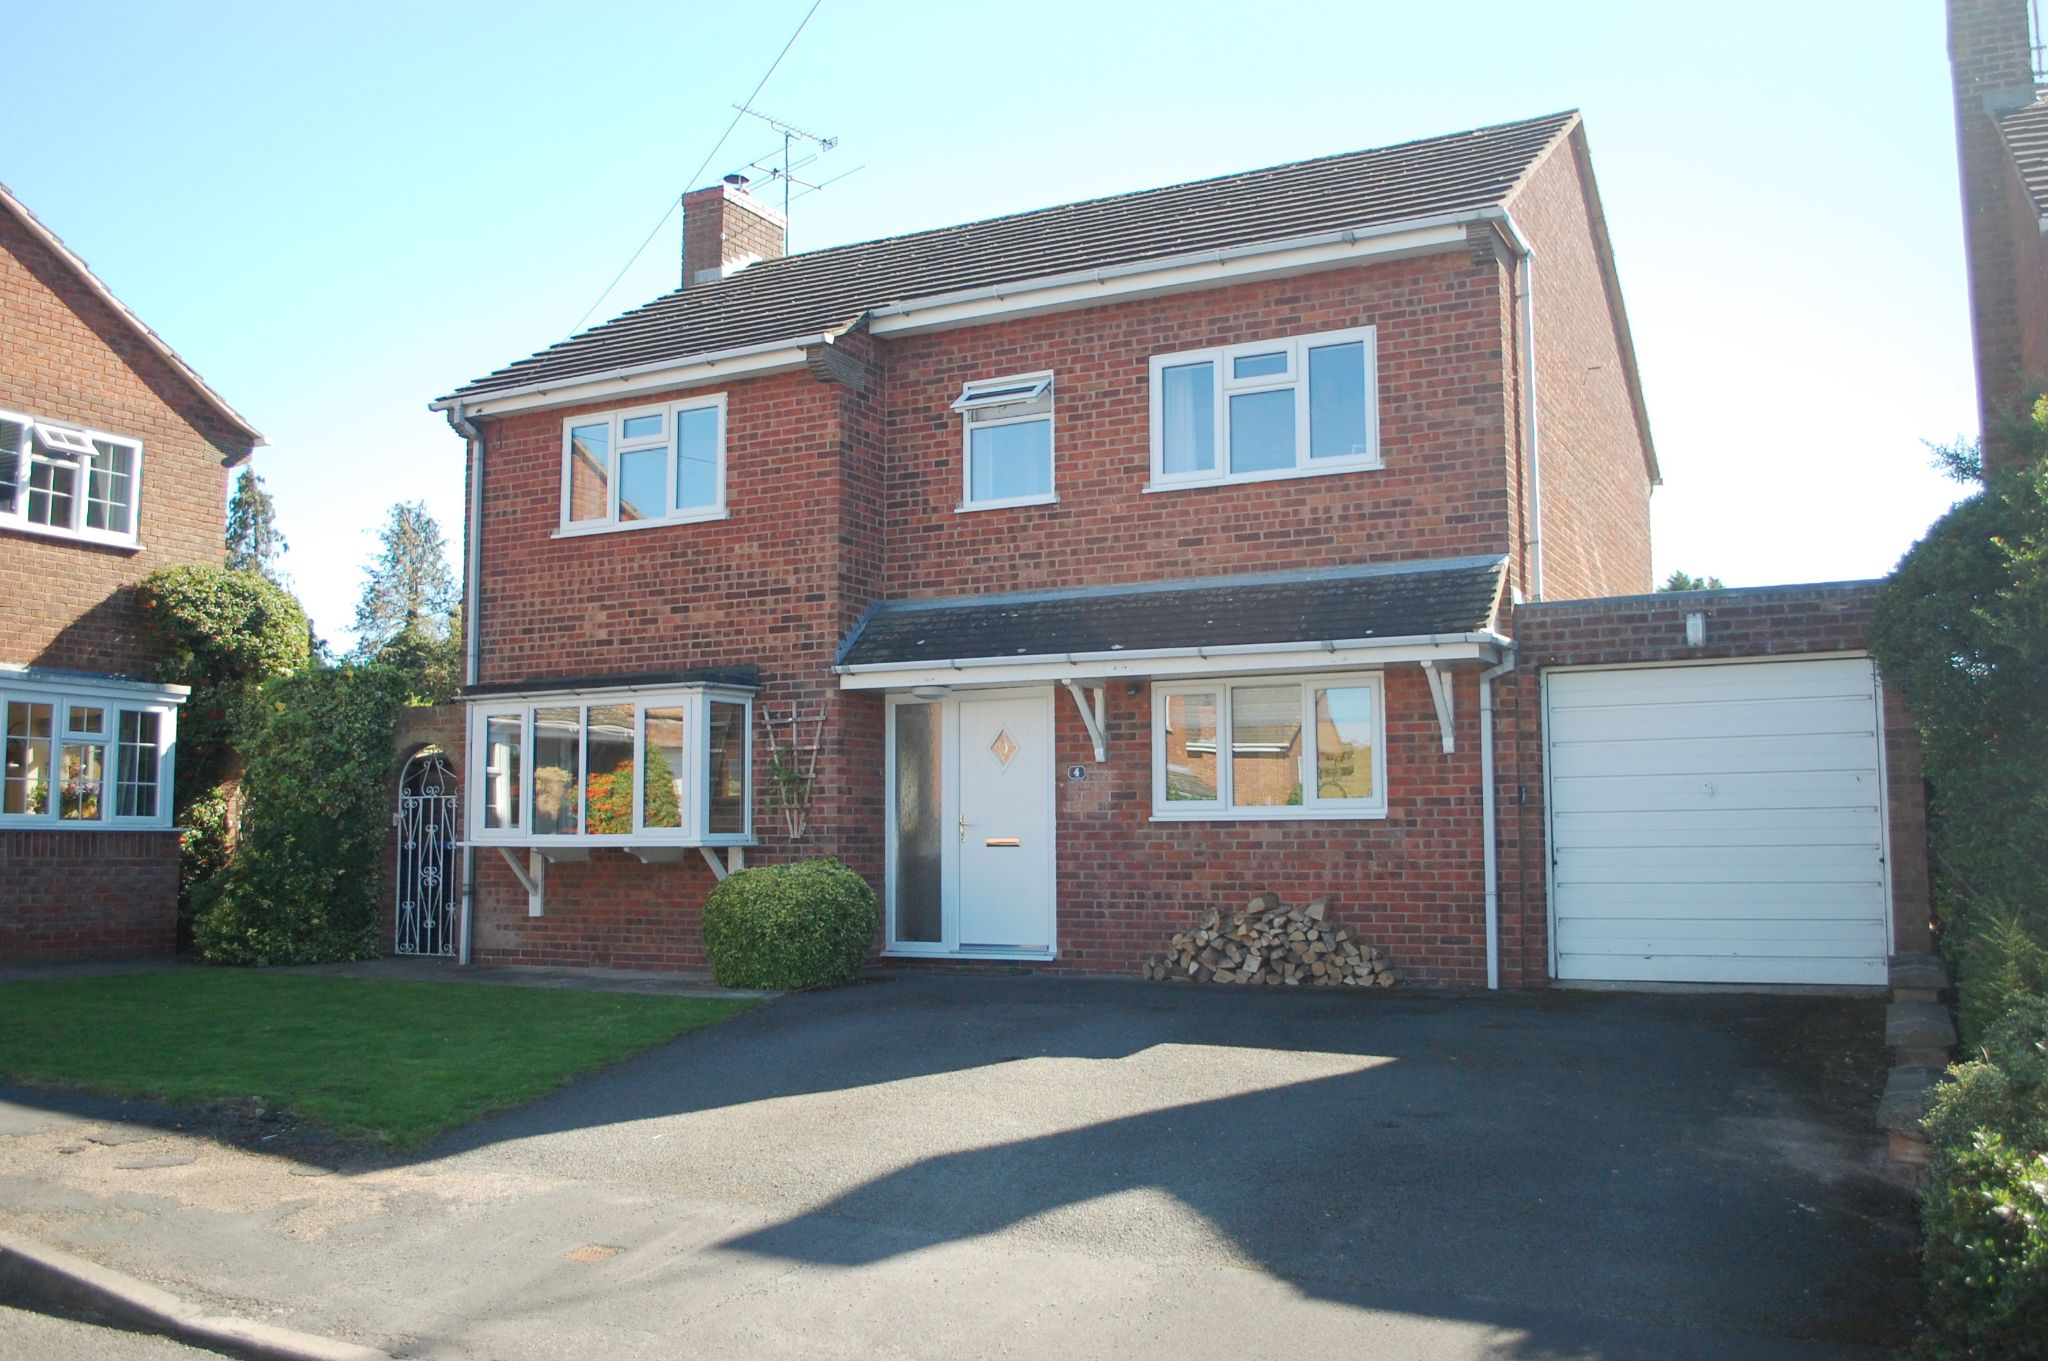 4 bedroom detached house For Sale in Welford On Avon, Stratford-upon-avon - Property photograph